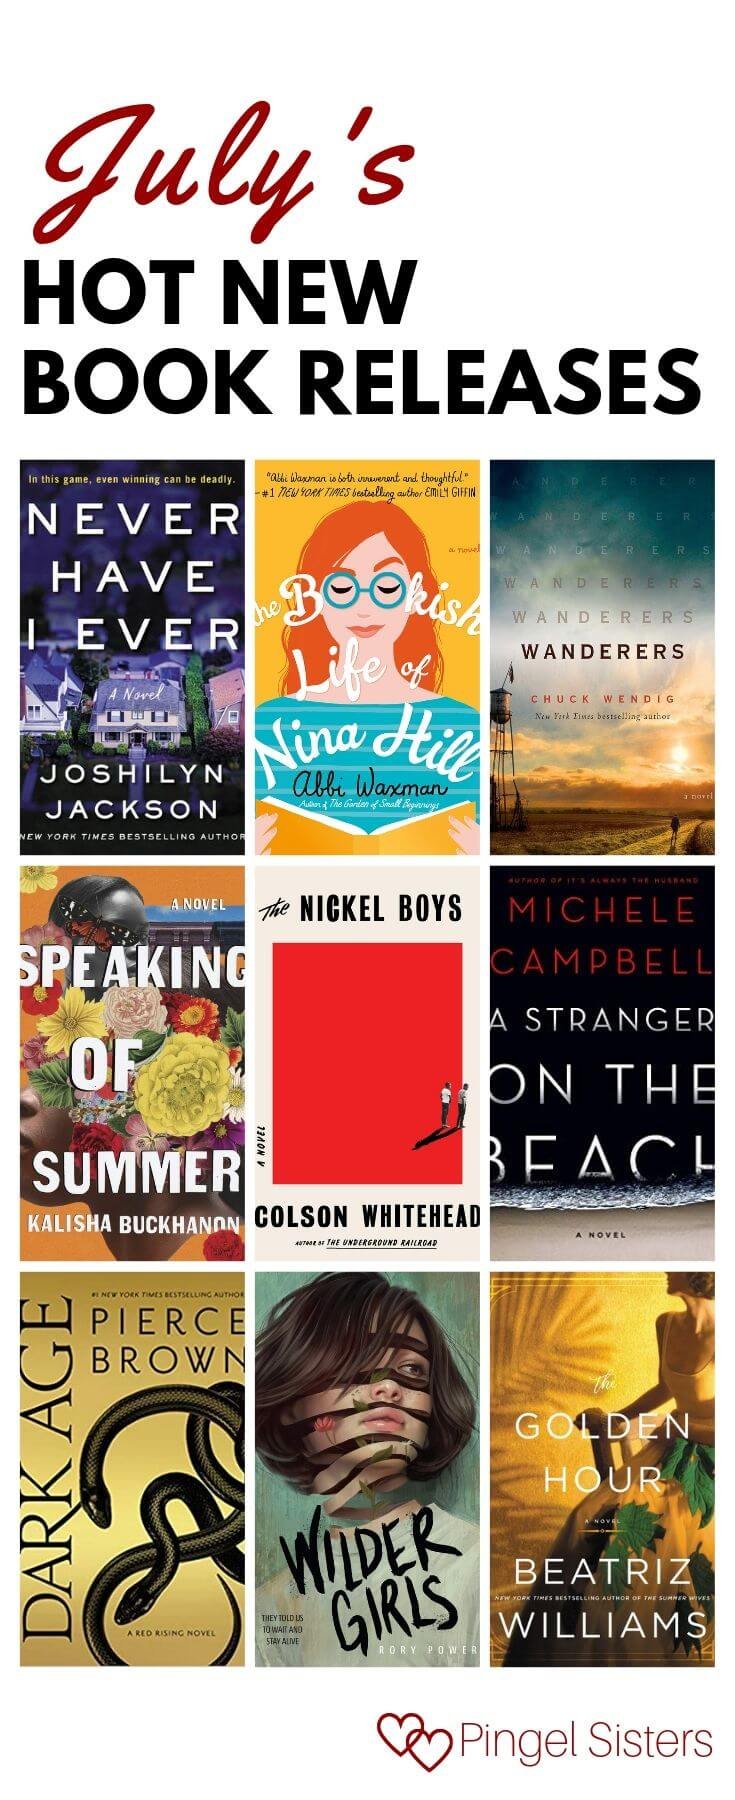 July's hot new book releaes